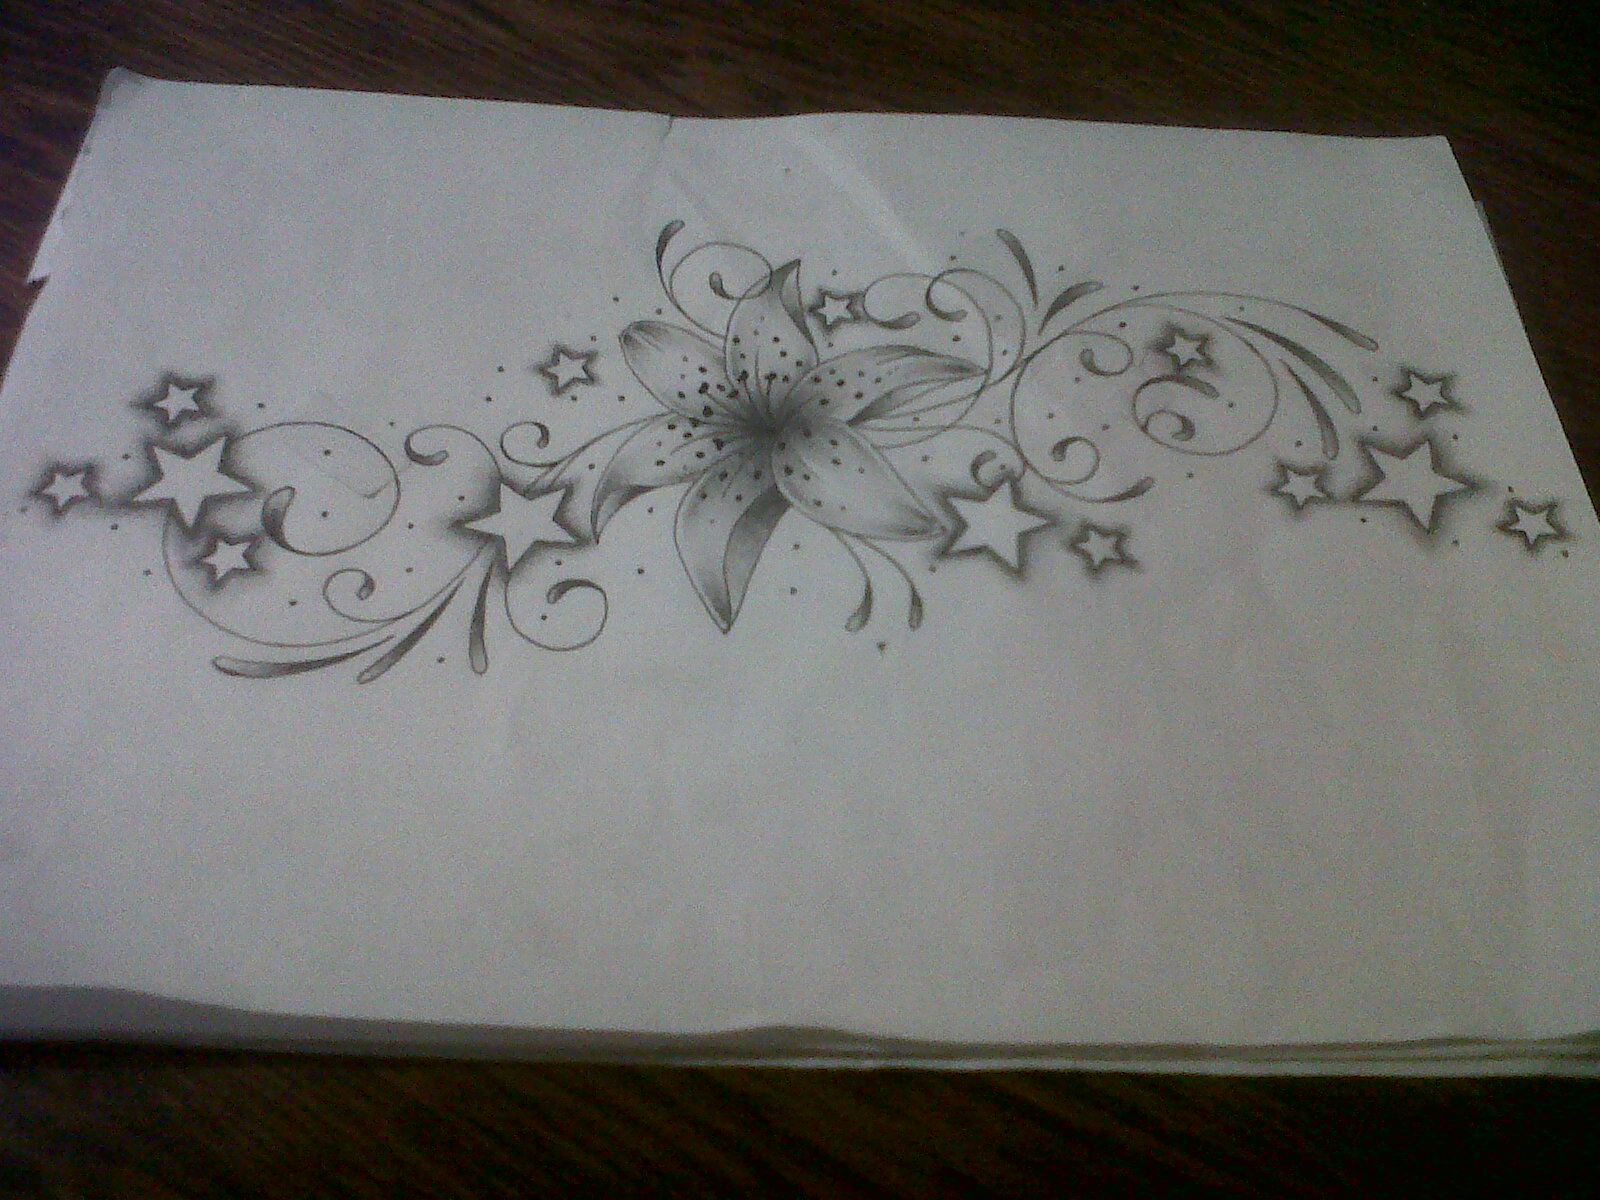 lily tattoo design with swirls and stars by tattoosuzette